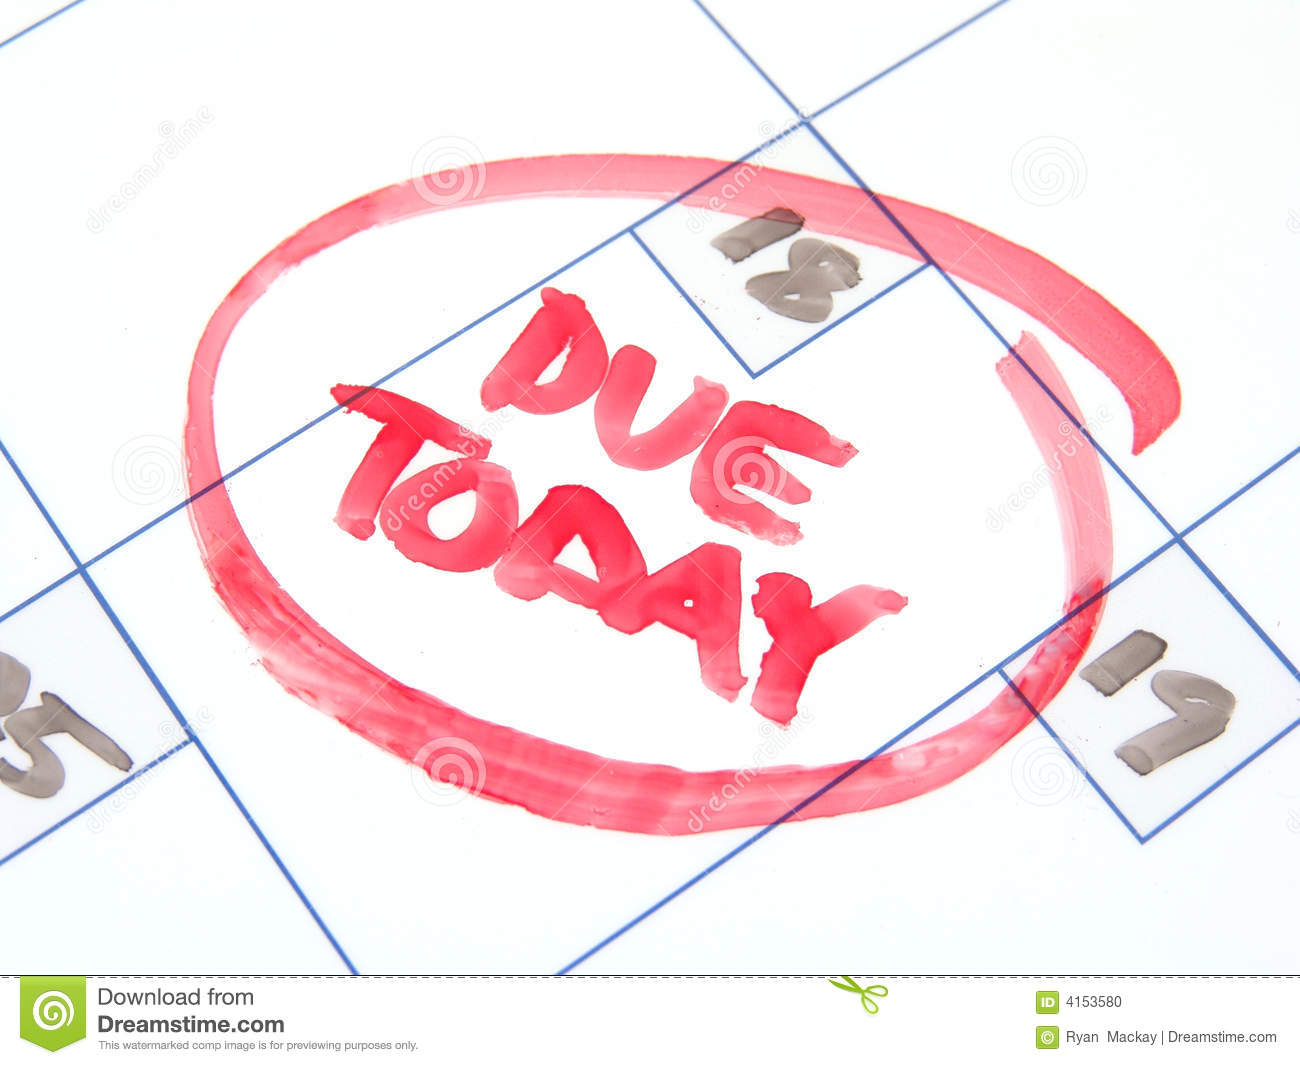 Due today stock photo. Image of date, calendar, looming.